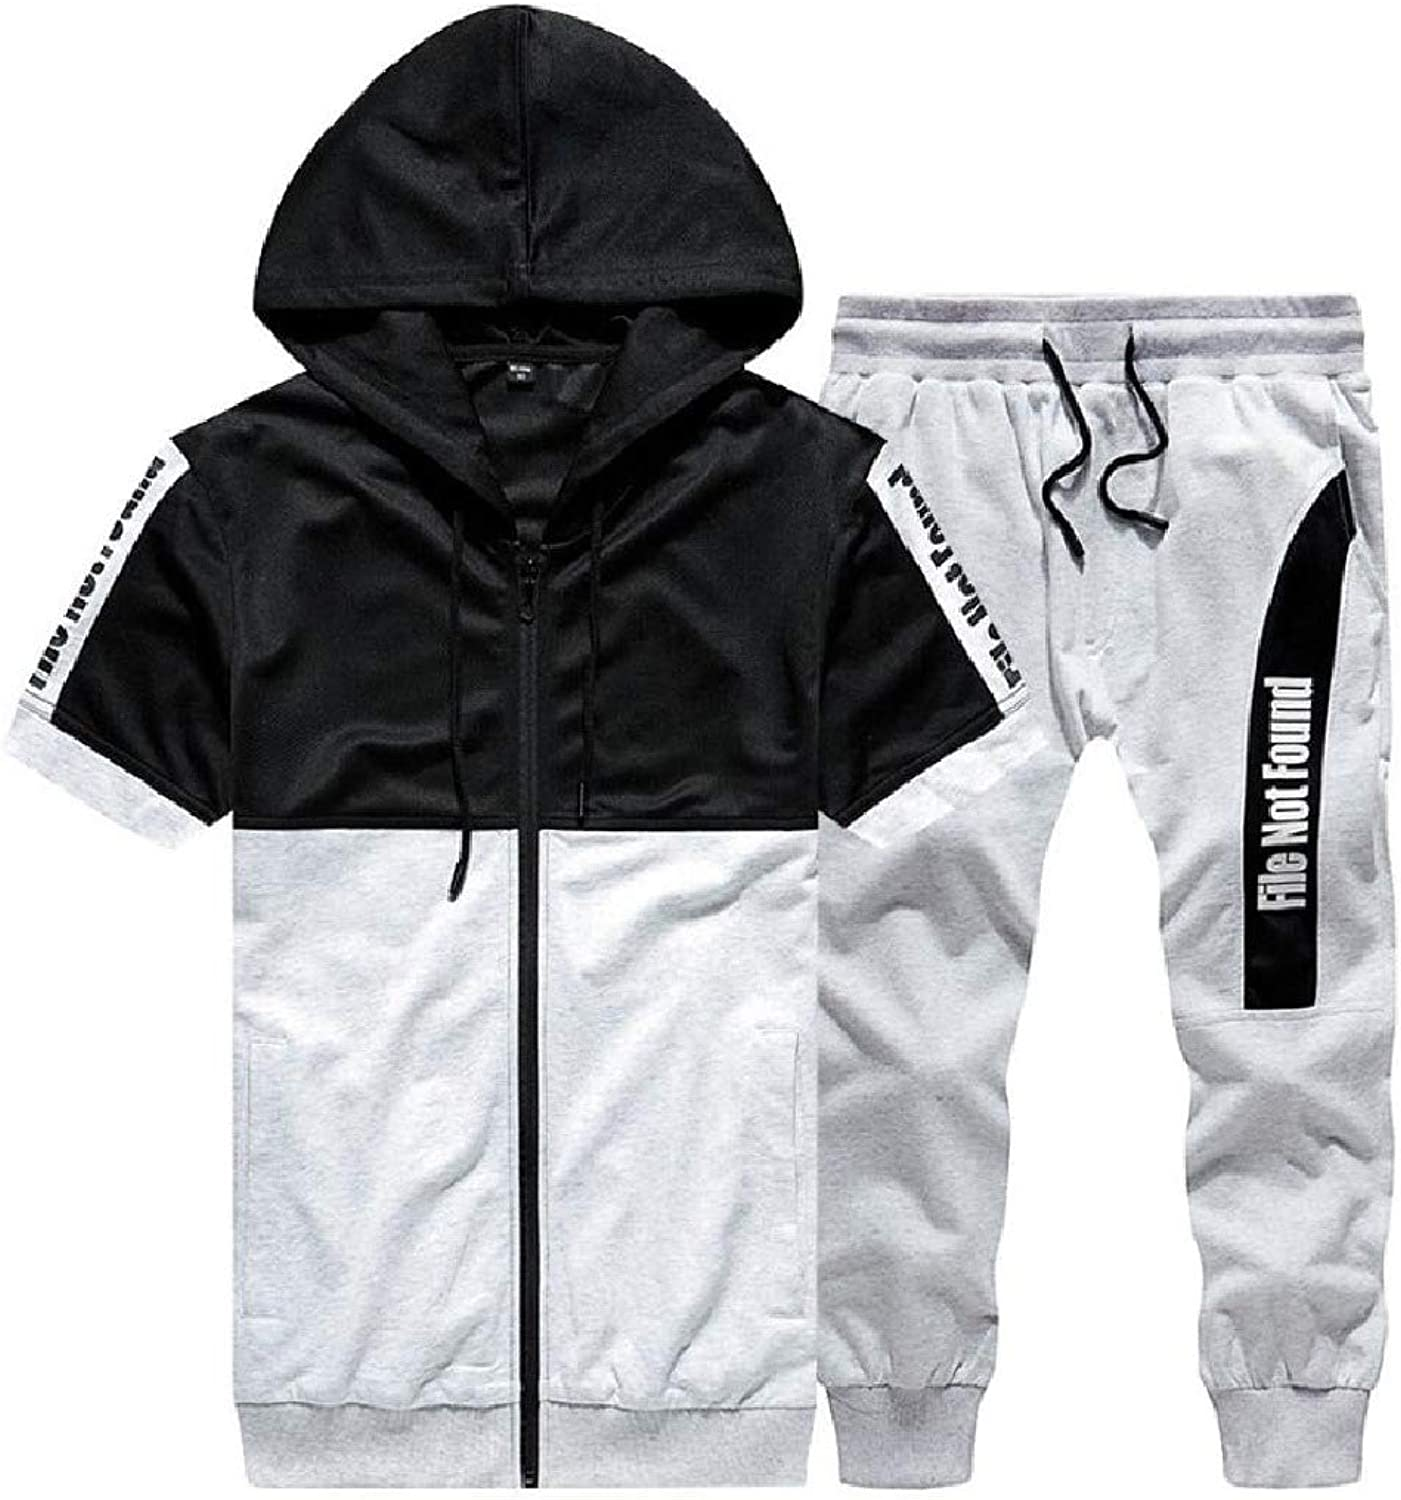 Energy Mens Chain Printed Short-Sleeve Hooded 3 4 Jogger Sweatsuit Set